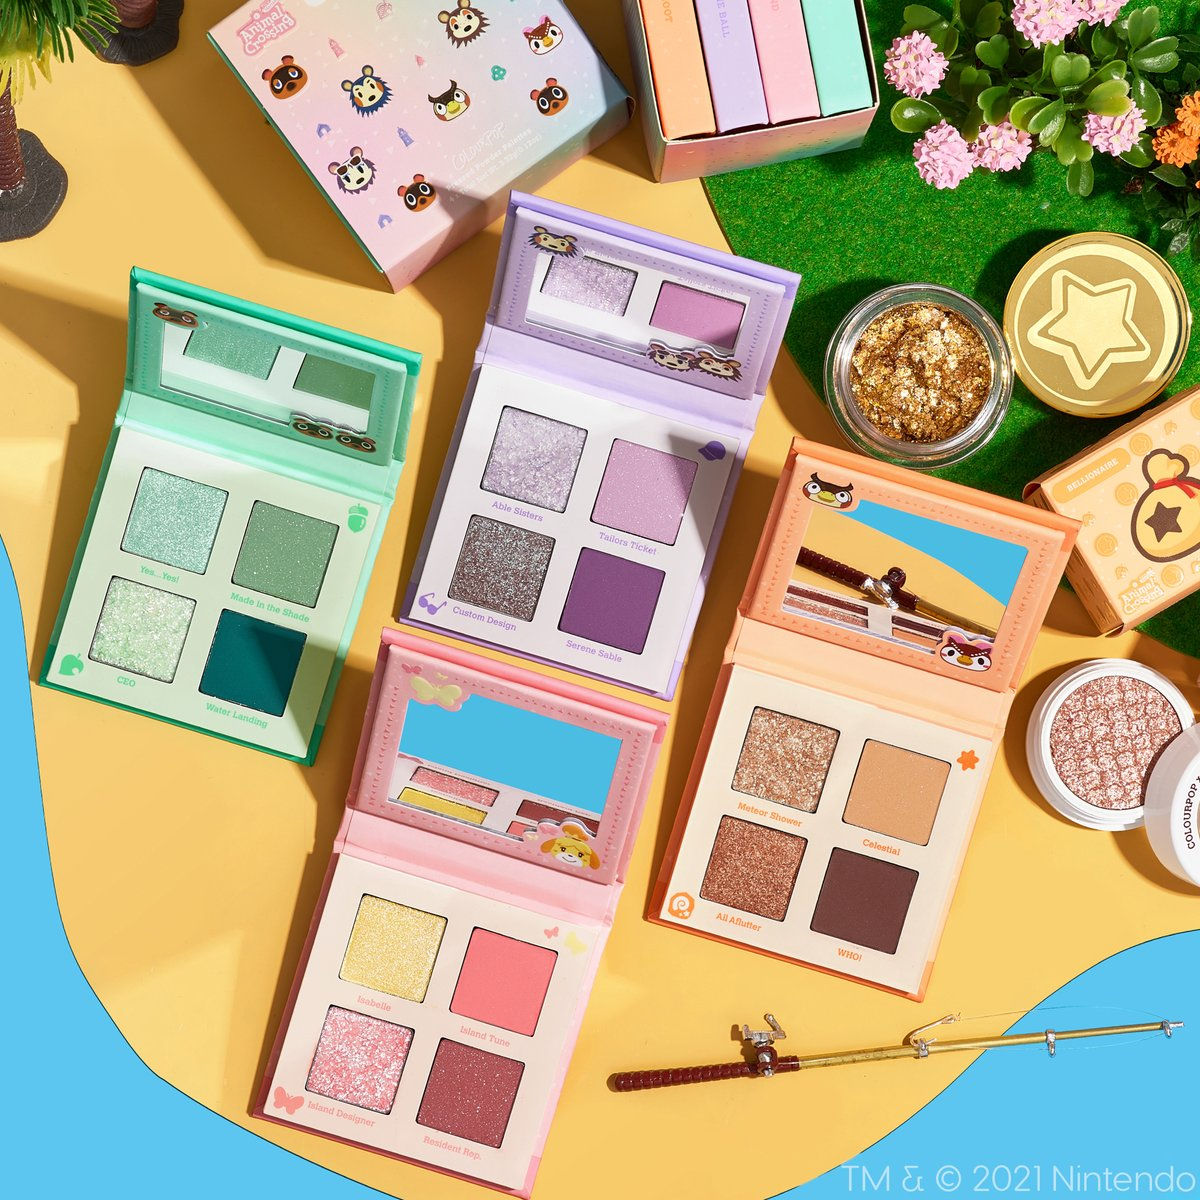 Featuring fun shades inspired by the island paradise life, the @ColourPopCo x Animal Crossing: New Horizons makeup collection adds some new hues to your look on 1/28! #ColourPopxAnimalCrossing 🏝️: